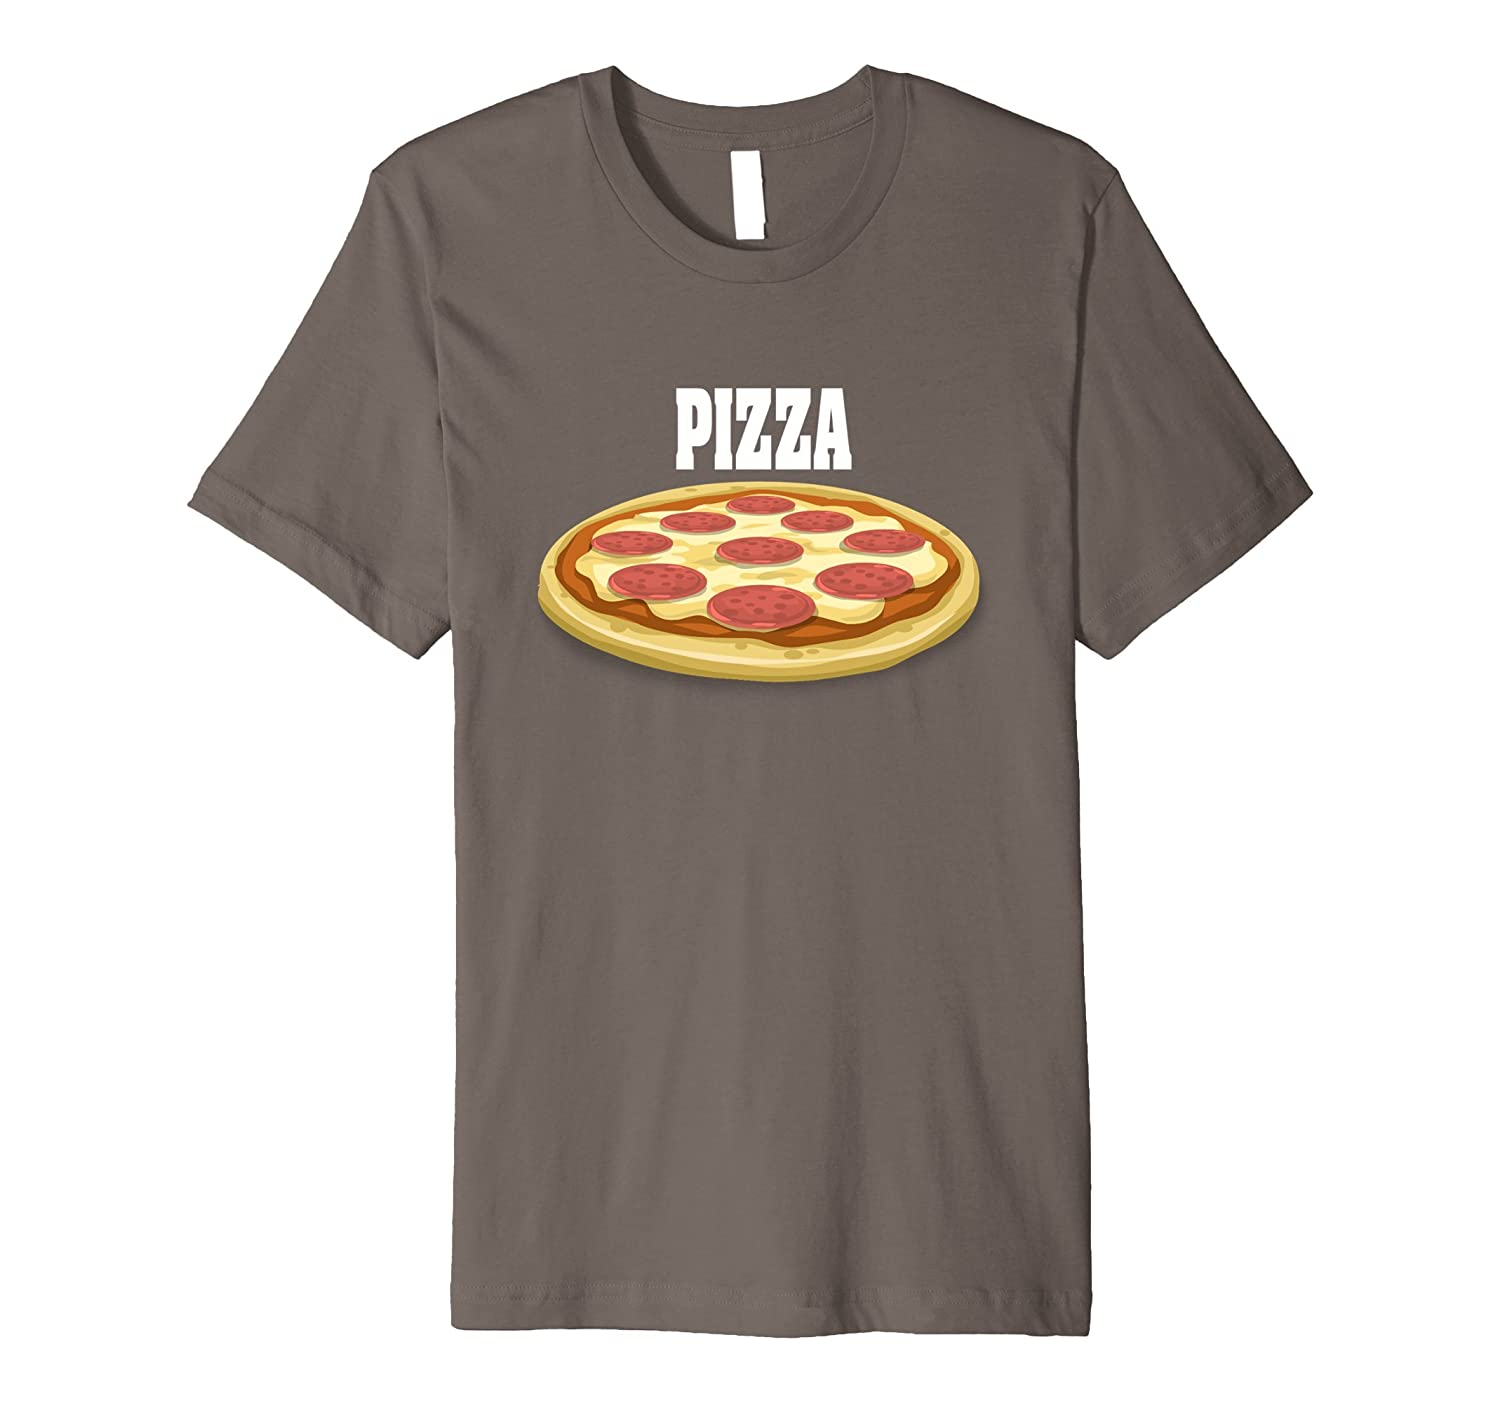 Pizza Couples Halloween Costume Premium Shirt - Beer & Pizza